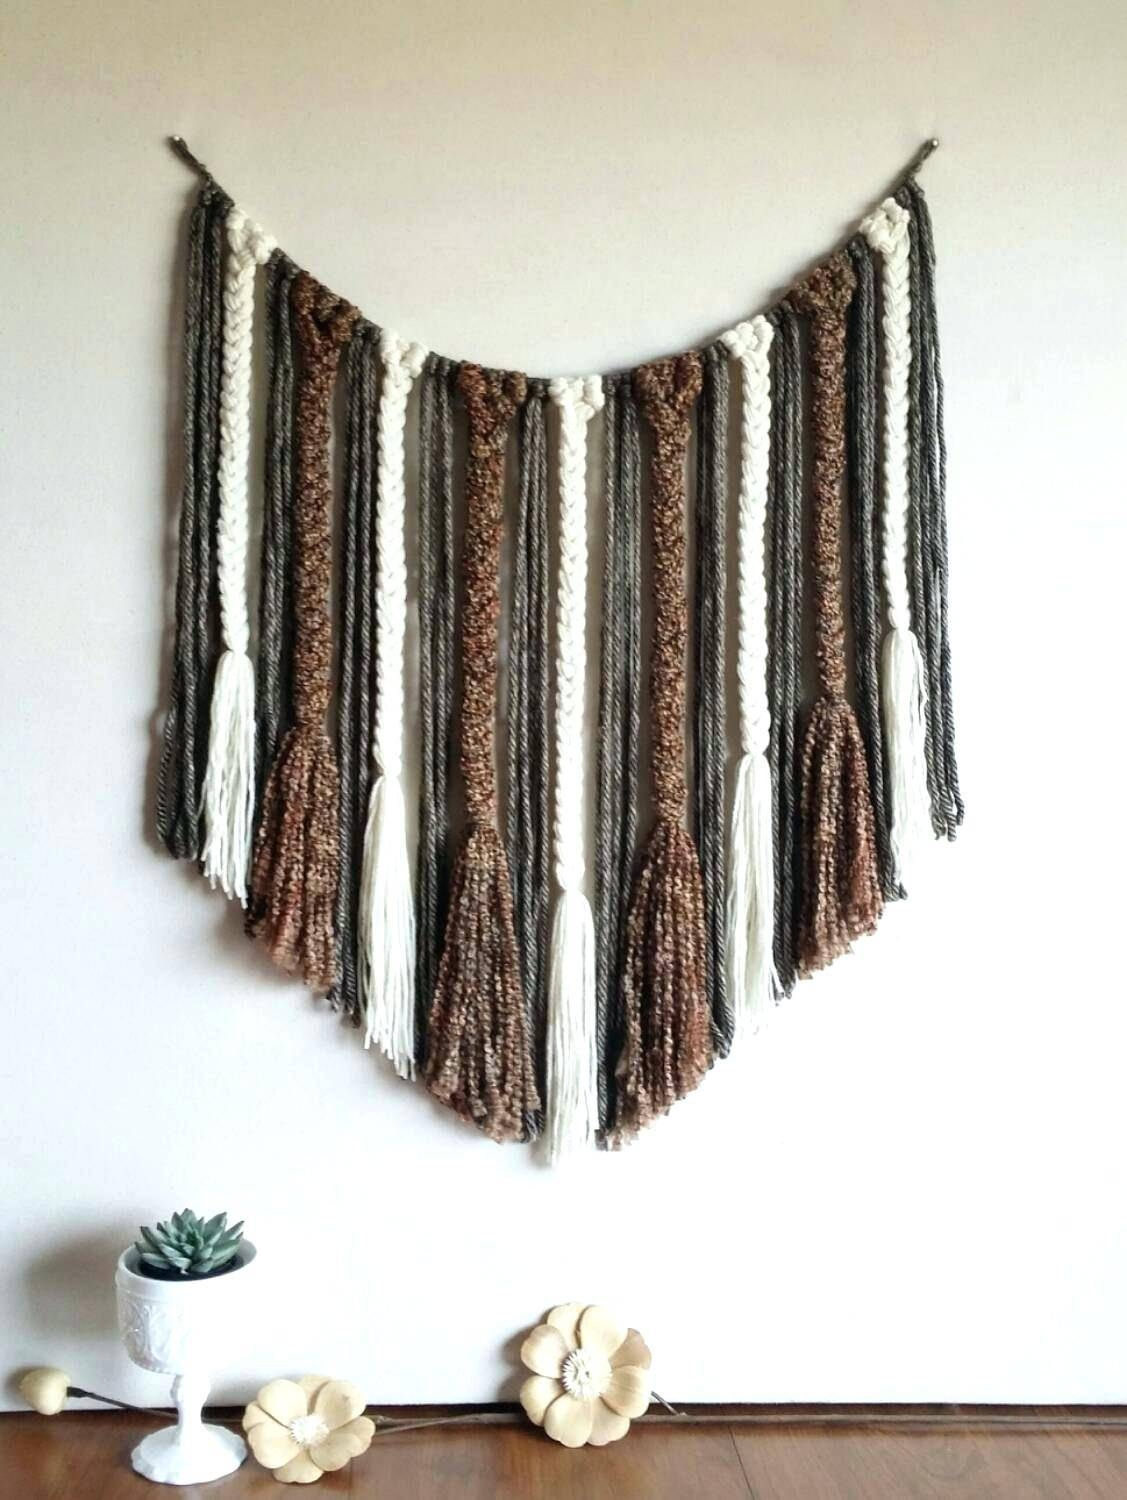 Wall Ideas : Western Metal Art Wall Hangings Western Wall Art For With Current Western Metal Wall Art Silhouettes (View 8 of 30)